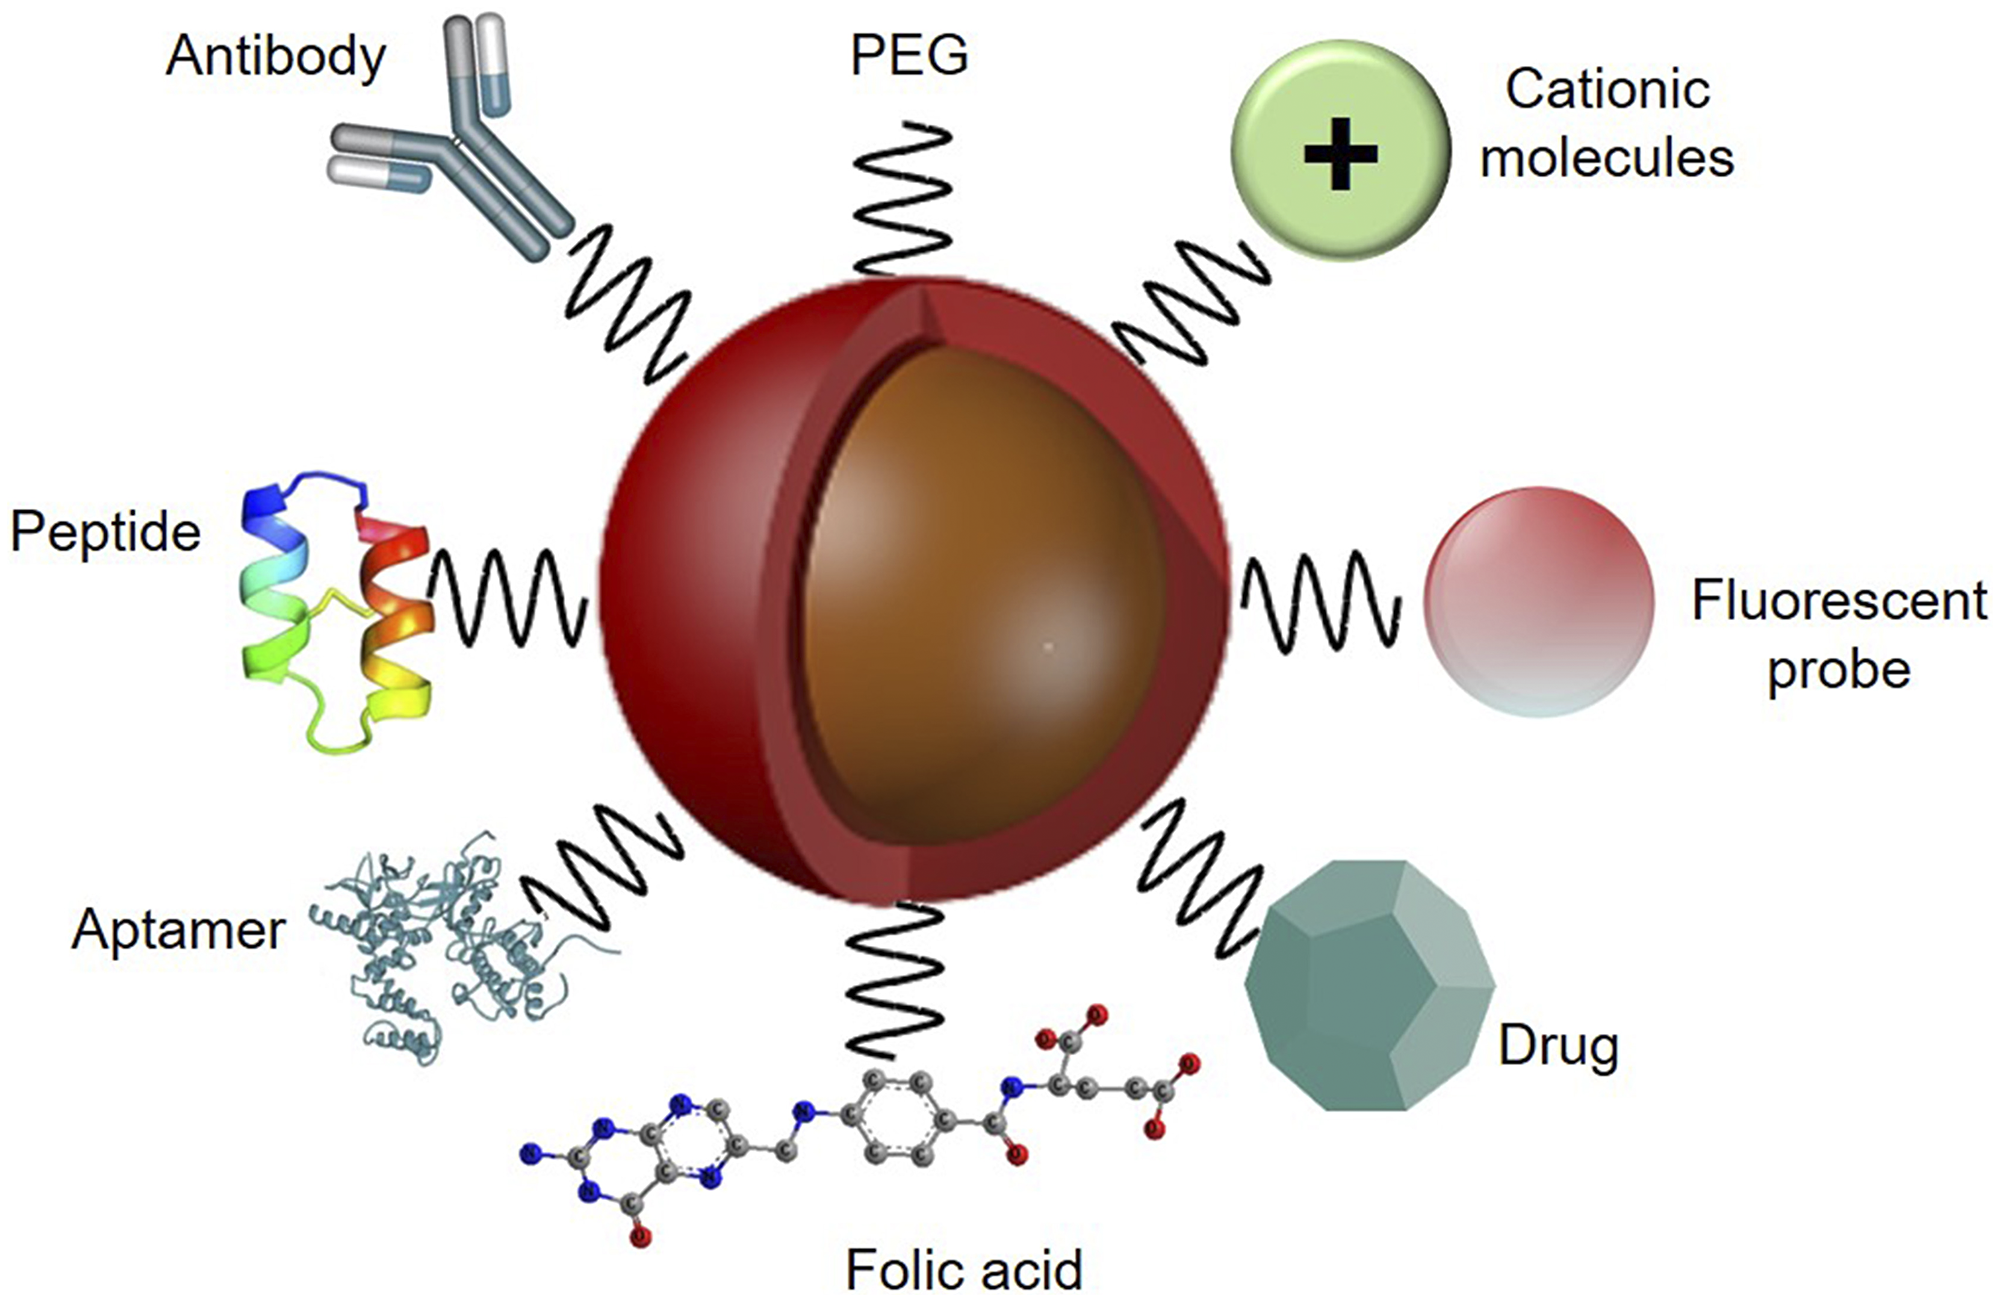 Functionalized nanoparticle platform with various targeting ligand agents for active PS delivery in PDT applications, with PEG to improve biocompatibility and an imaging fluorescent probe to monitor PS specific tumour cellular uptake.